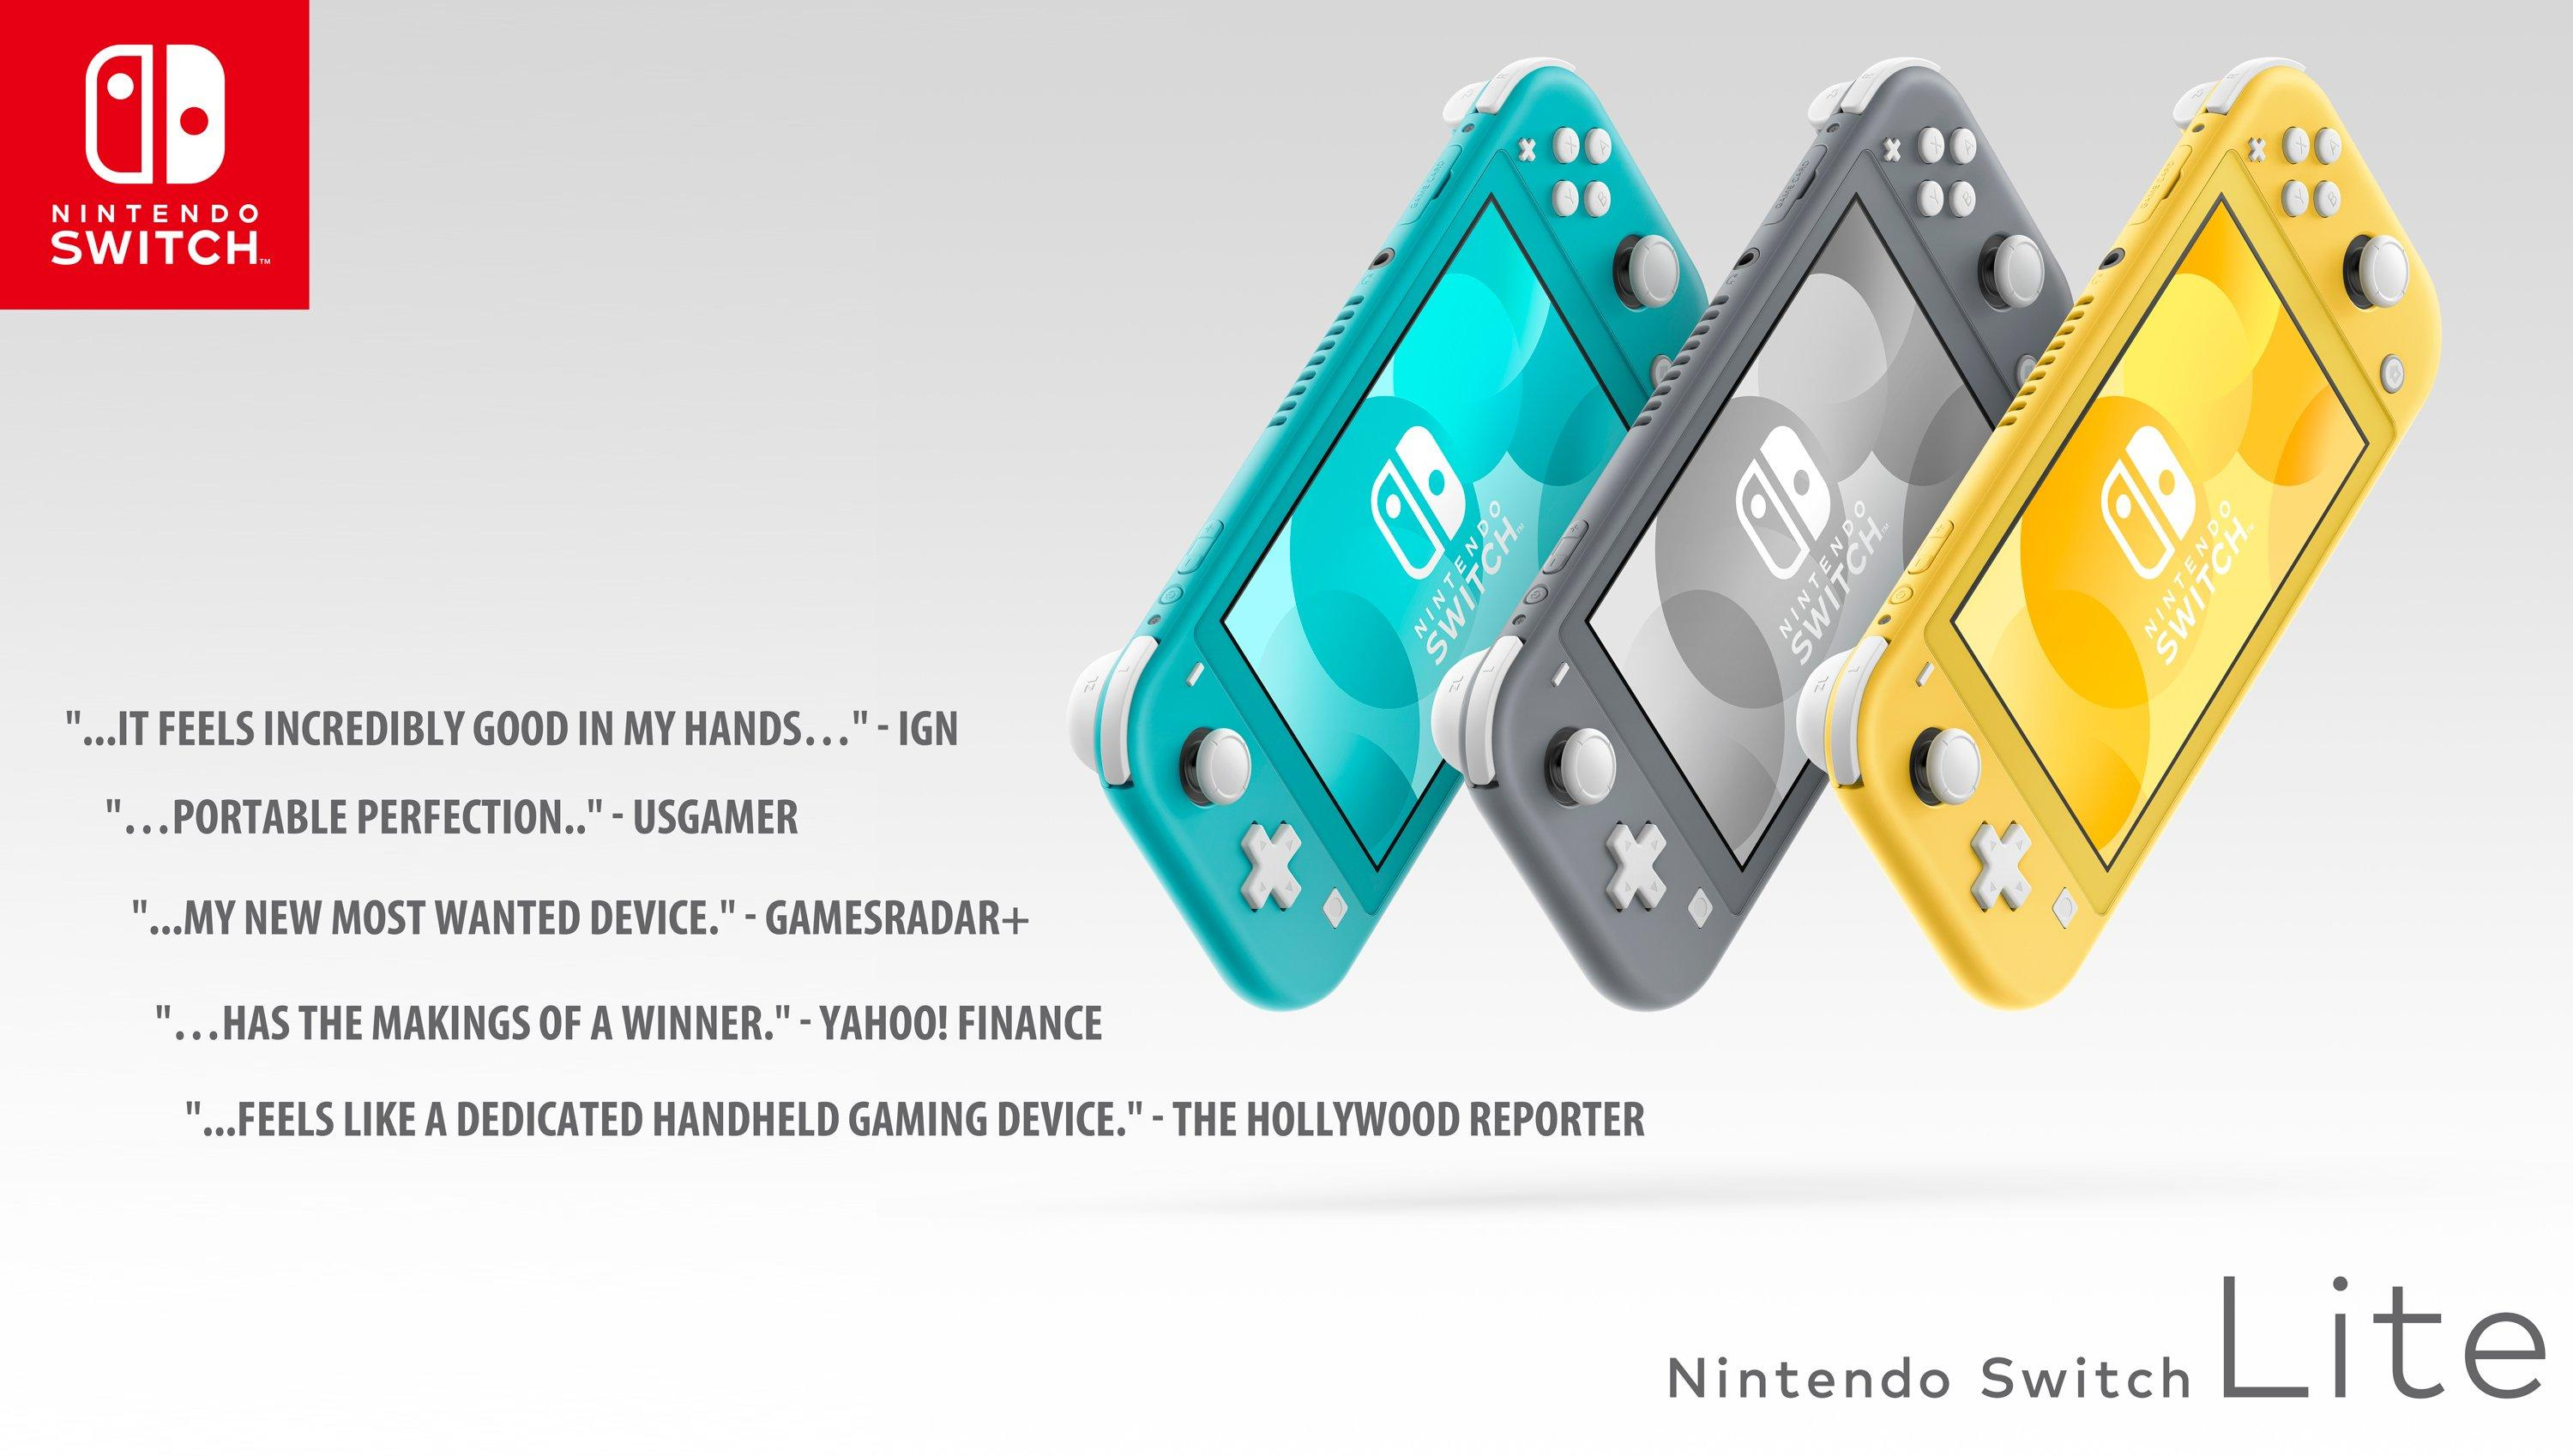 Nintendo Switch Accolades Image